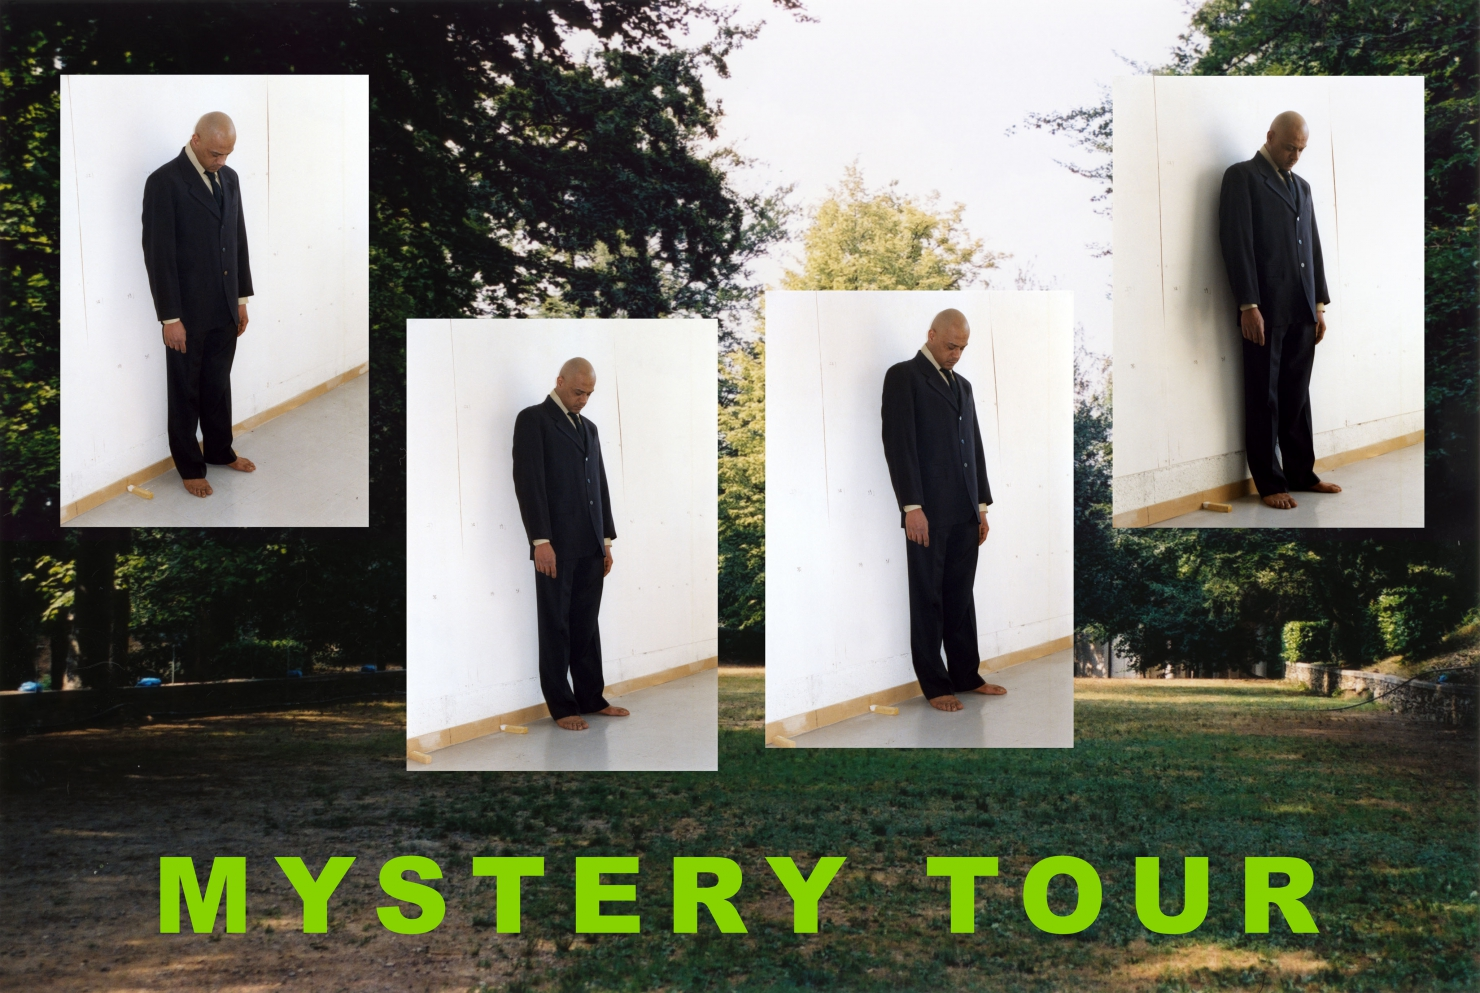 Mystery Tour 08.2 - 2006